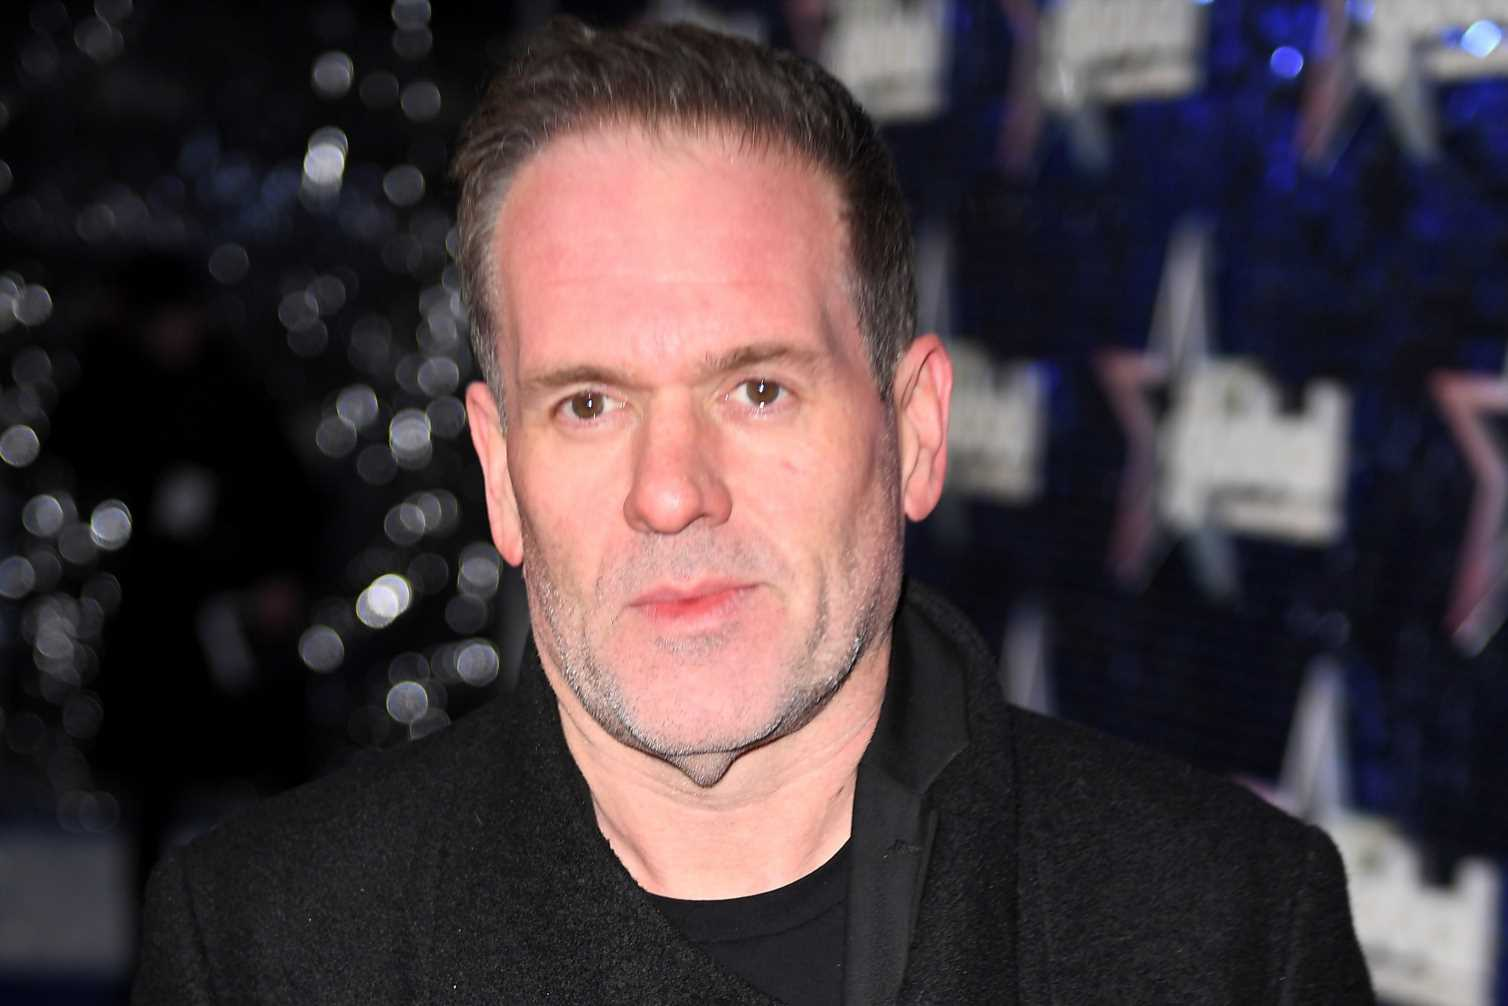 Chris Moyles forced to deny he's DEAD after cruel death hoax online claims he 'died in an aubergine accident' and #RIPChrisMoyles trends on Twitter – The Sun